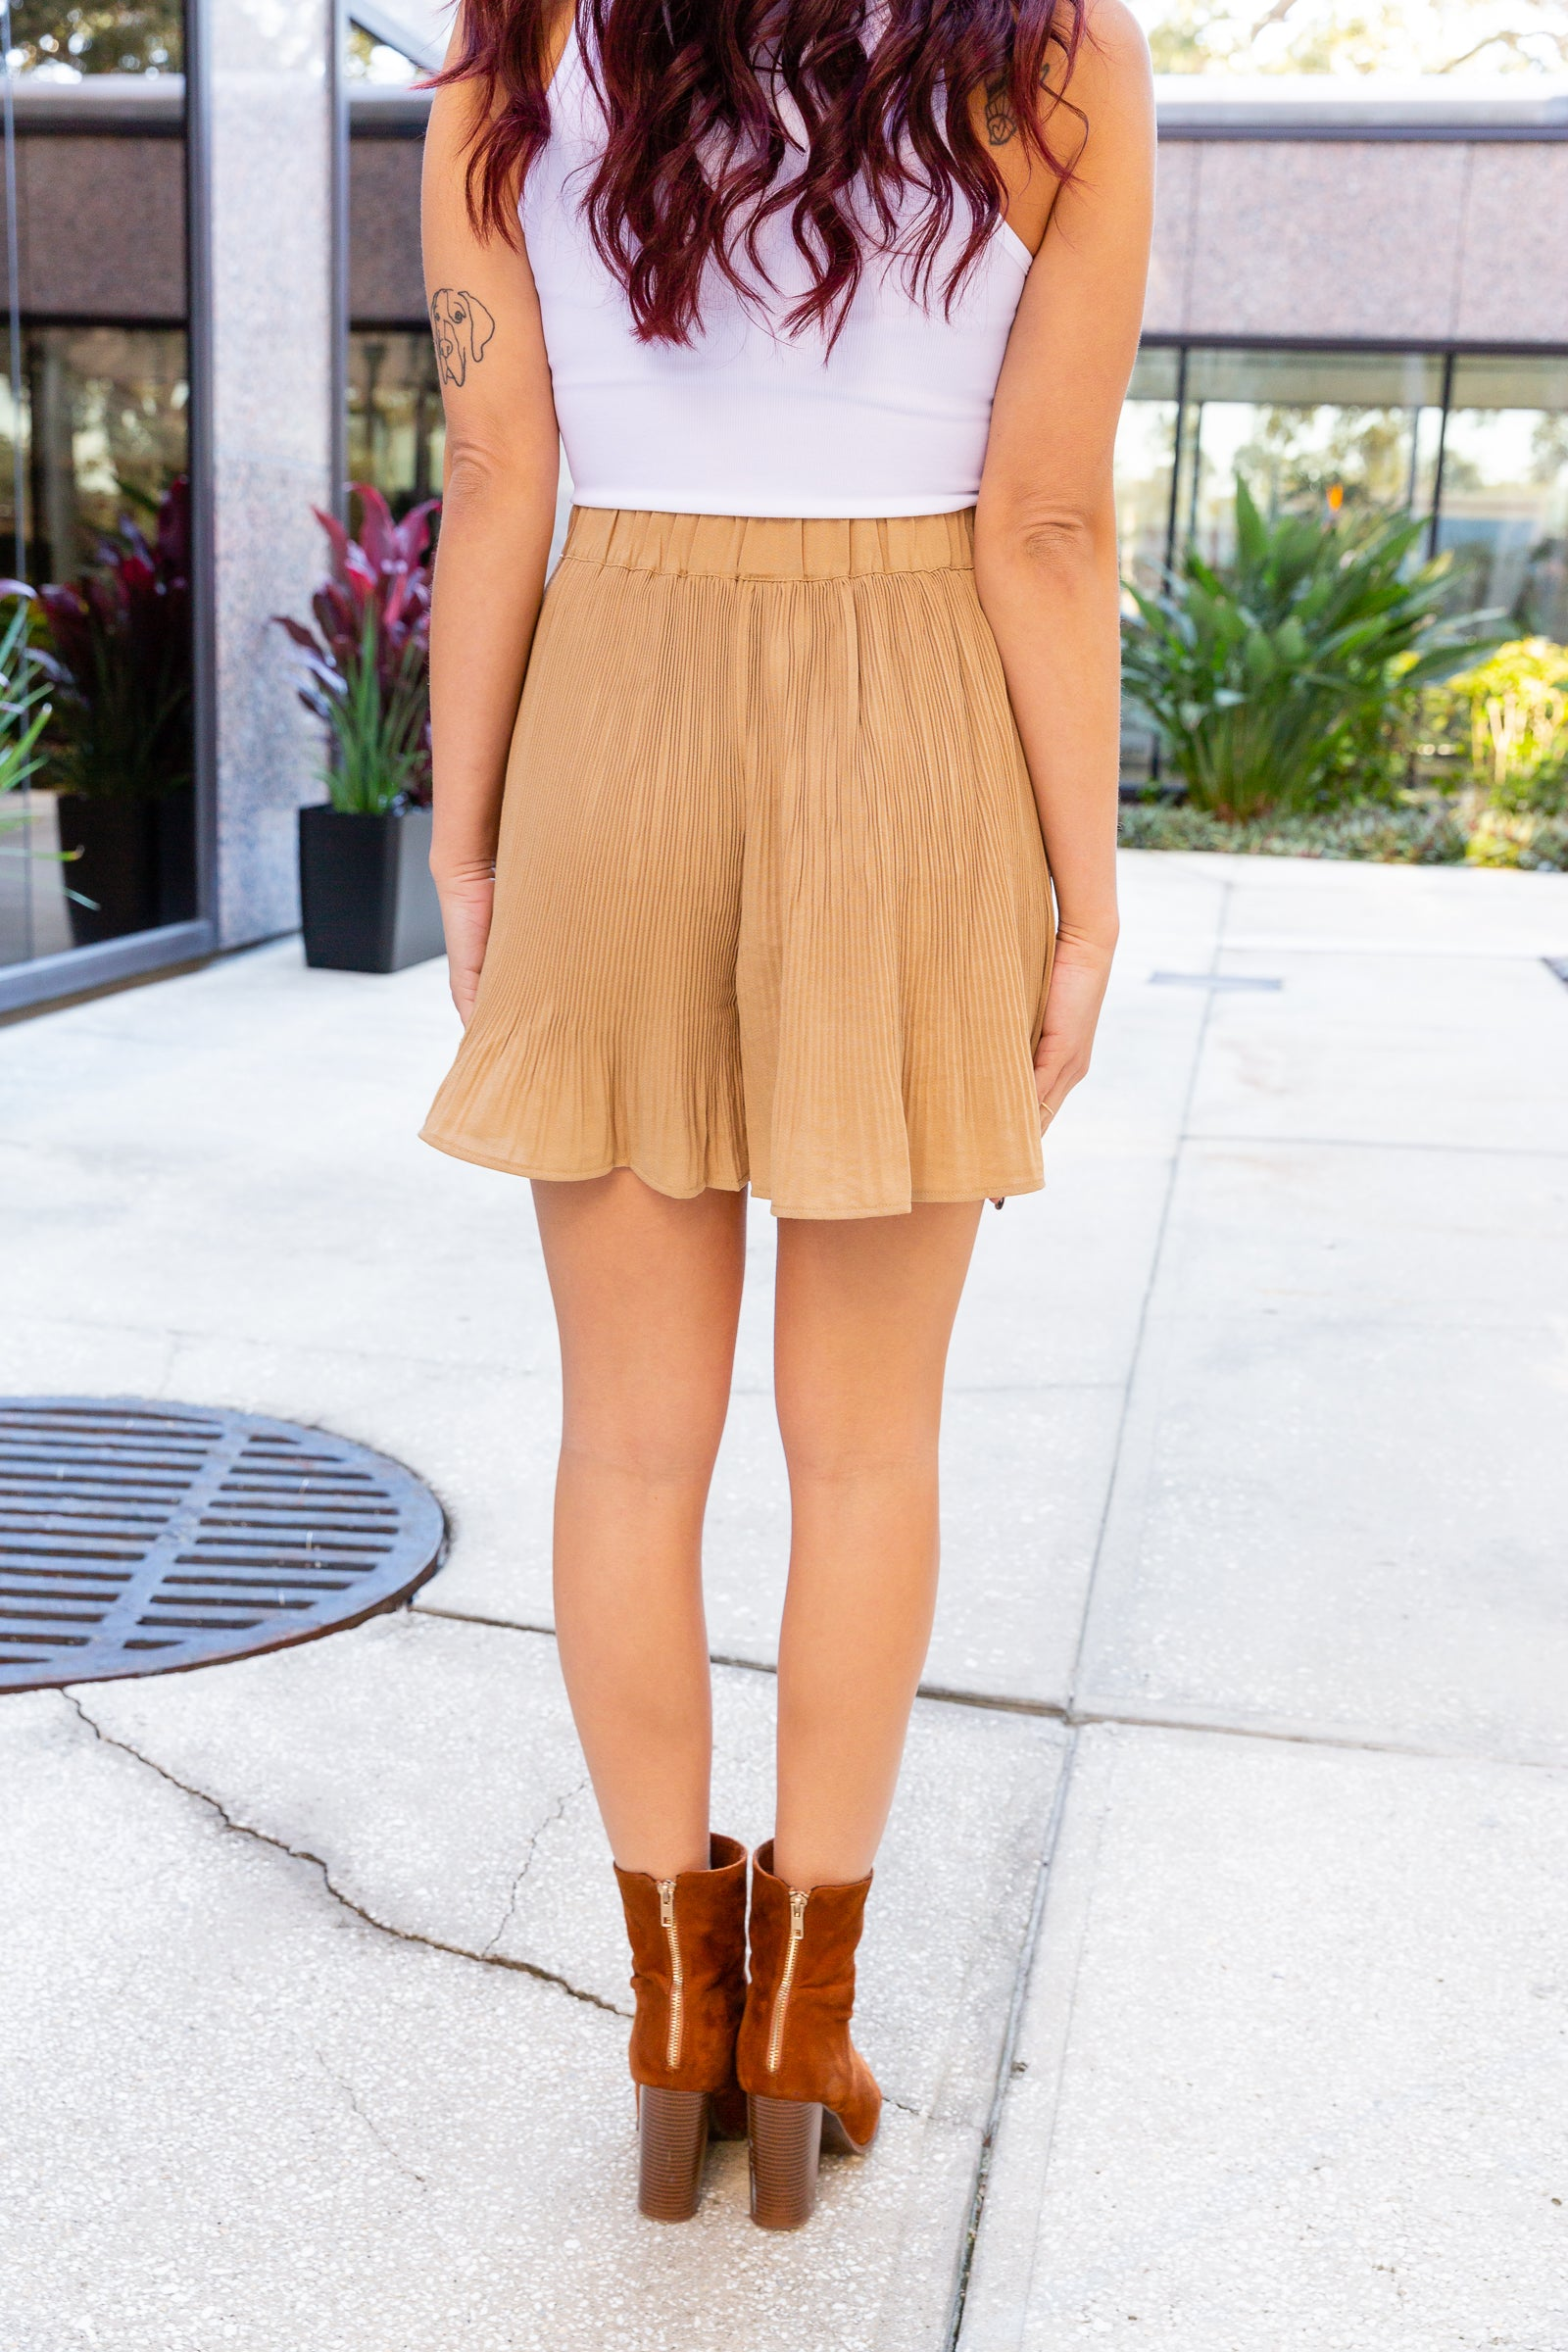 These adorable shorts have an elastic waistband that goes into pleated comfortable shorts with ruffle trim at the bottom. These pleated shorts feature a fabric tie to cinch at the waist.